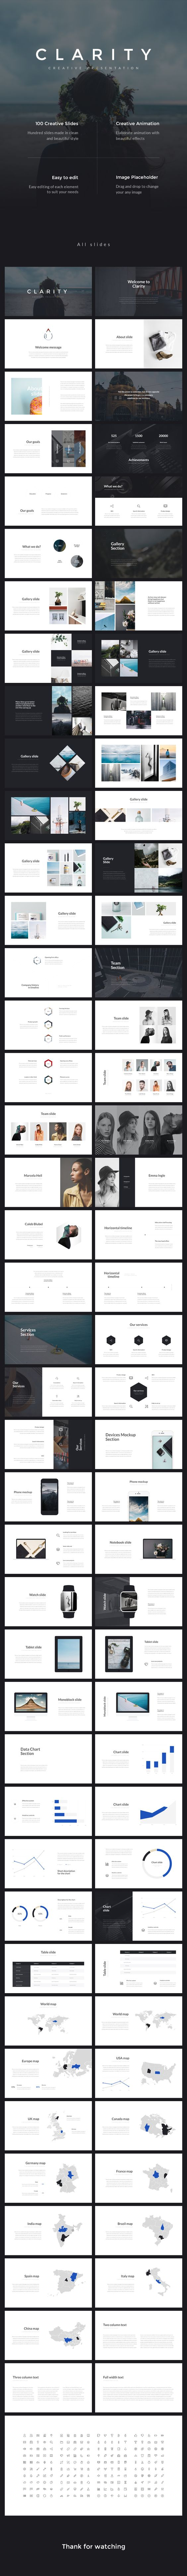 Clarity PowerPoint Presentation - PowerPoint Templates Presentation Templates